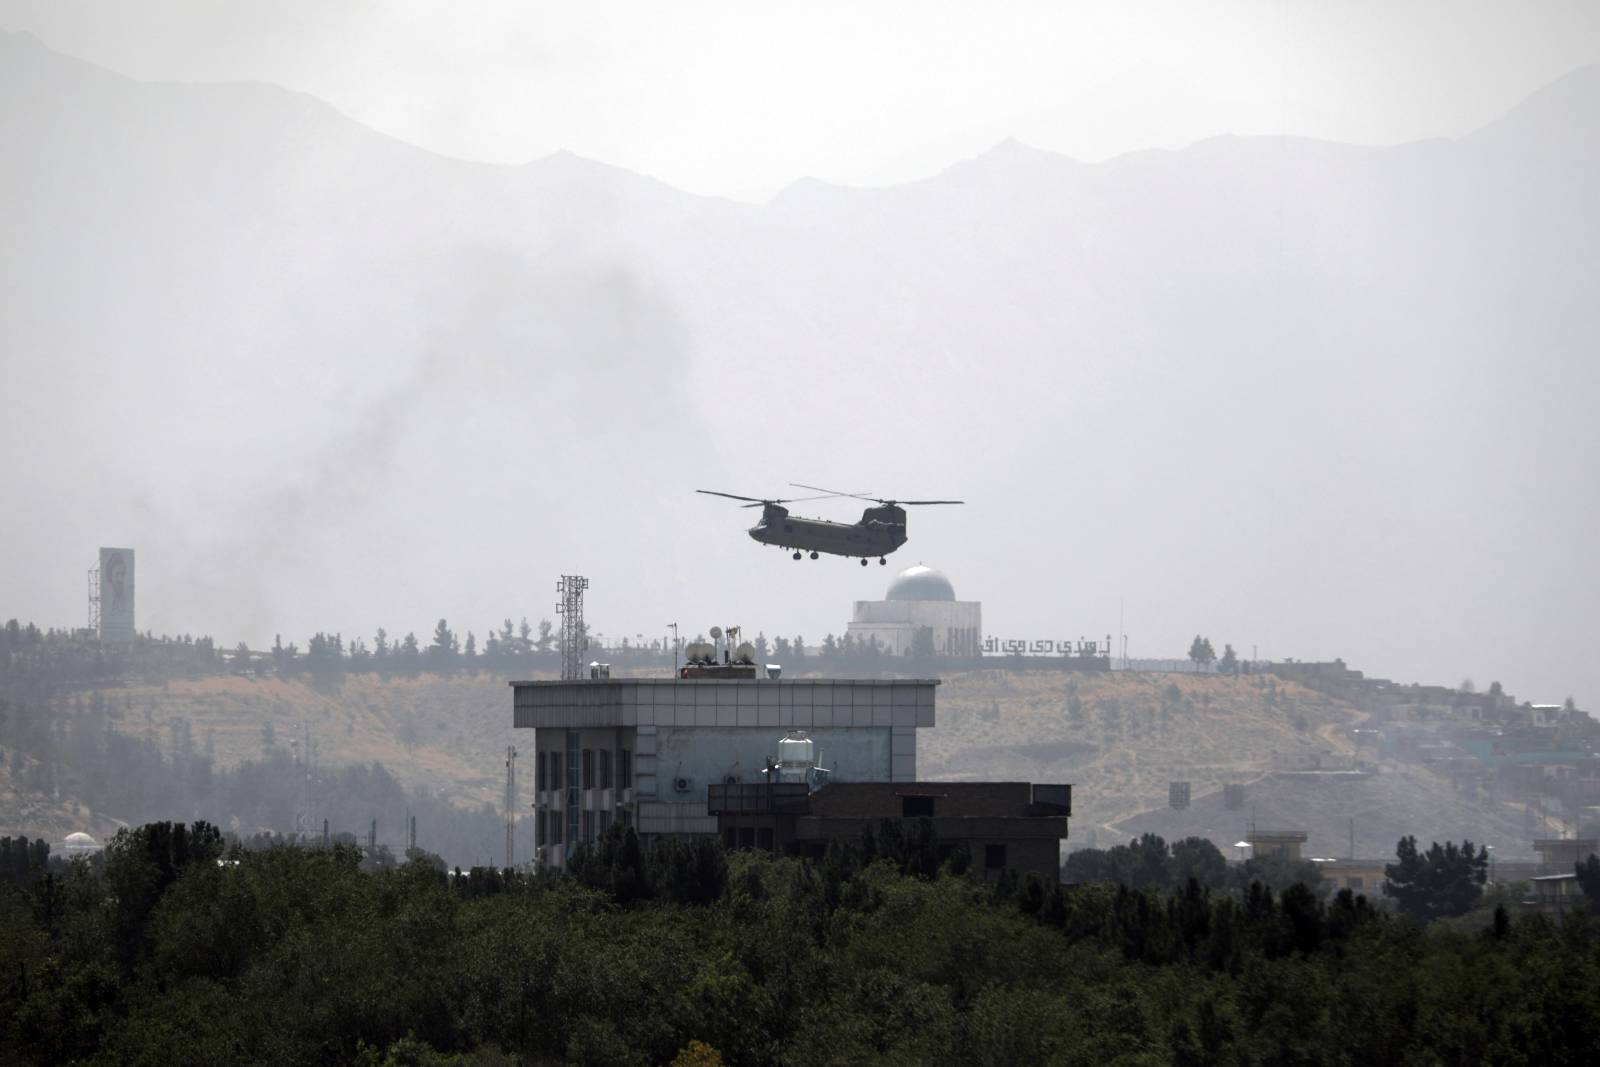 A U.S. Chinook helicopter flies over the U.S. Embassy in Kabul, Afghanistan, Sunday, Aug. 15, 2021.